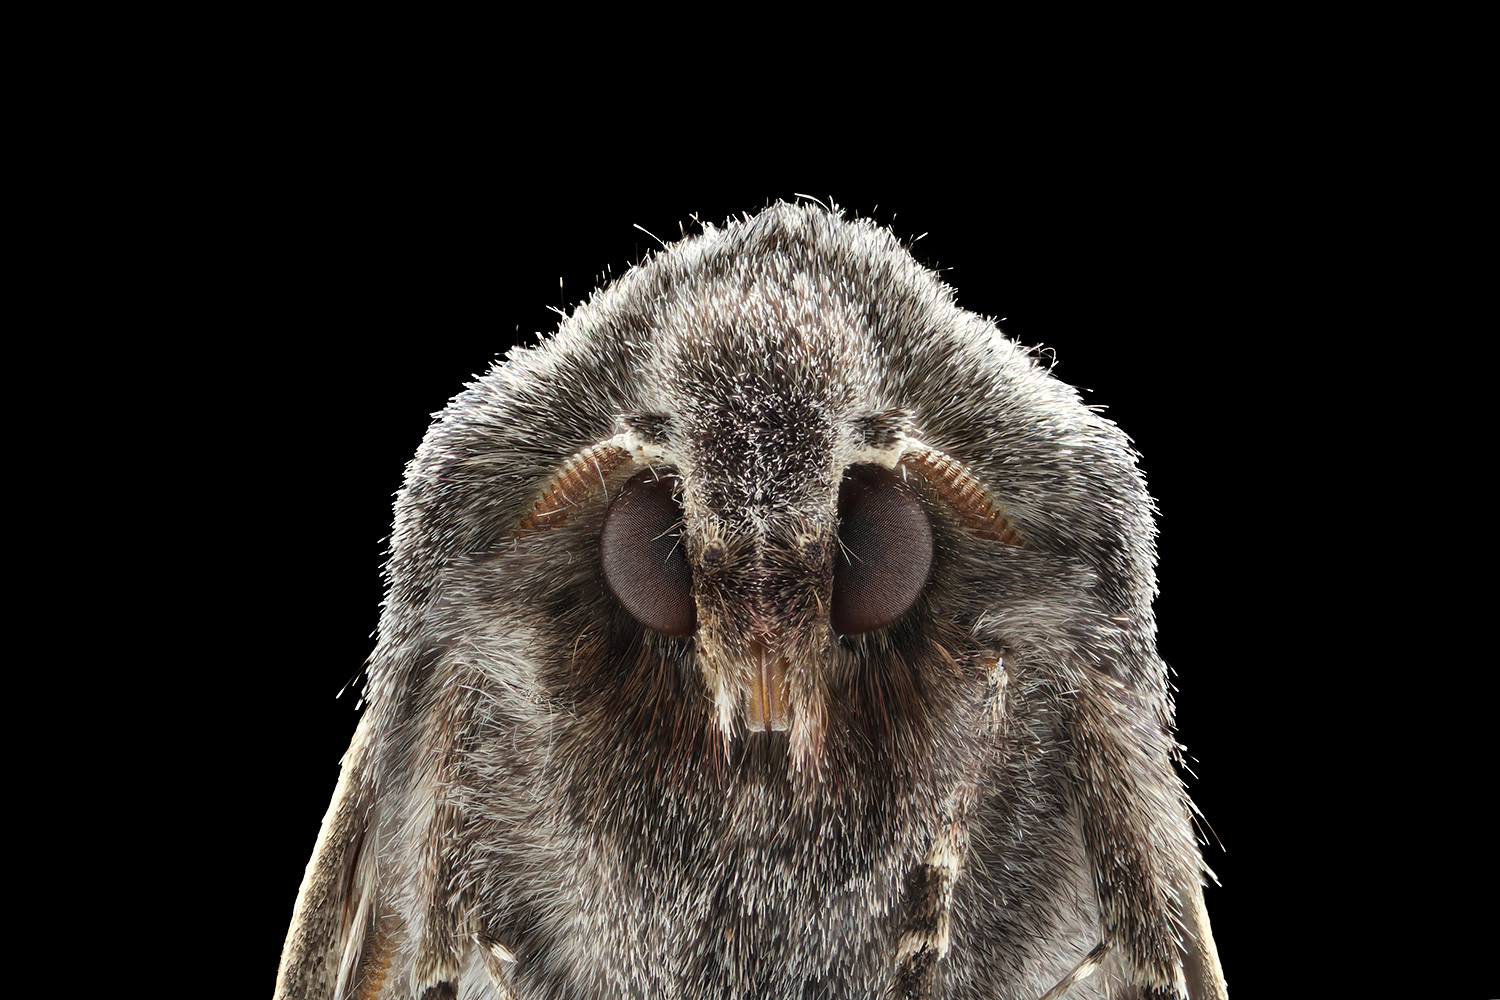 moth_face_plus.jpg